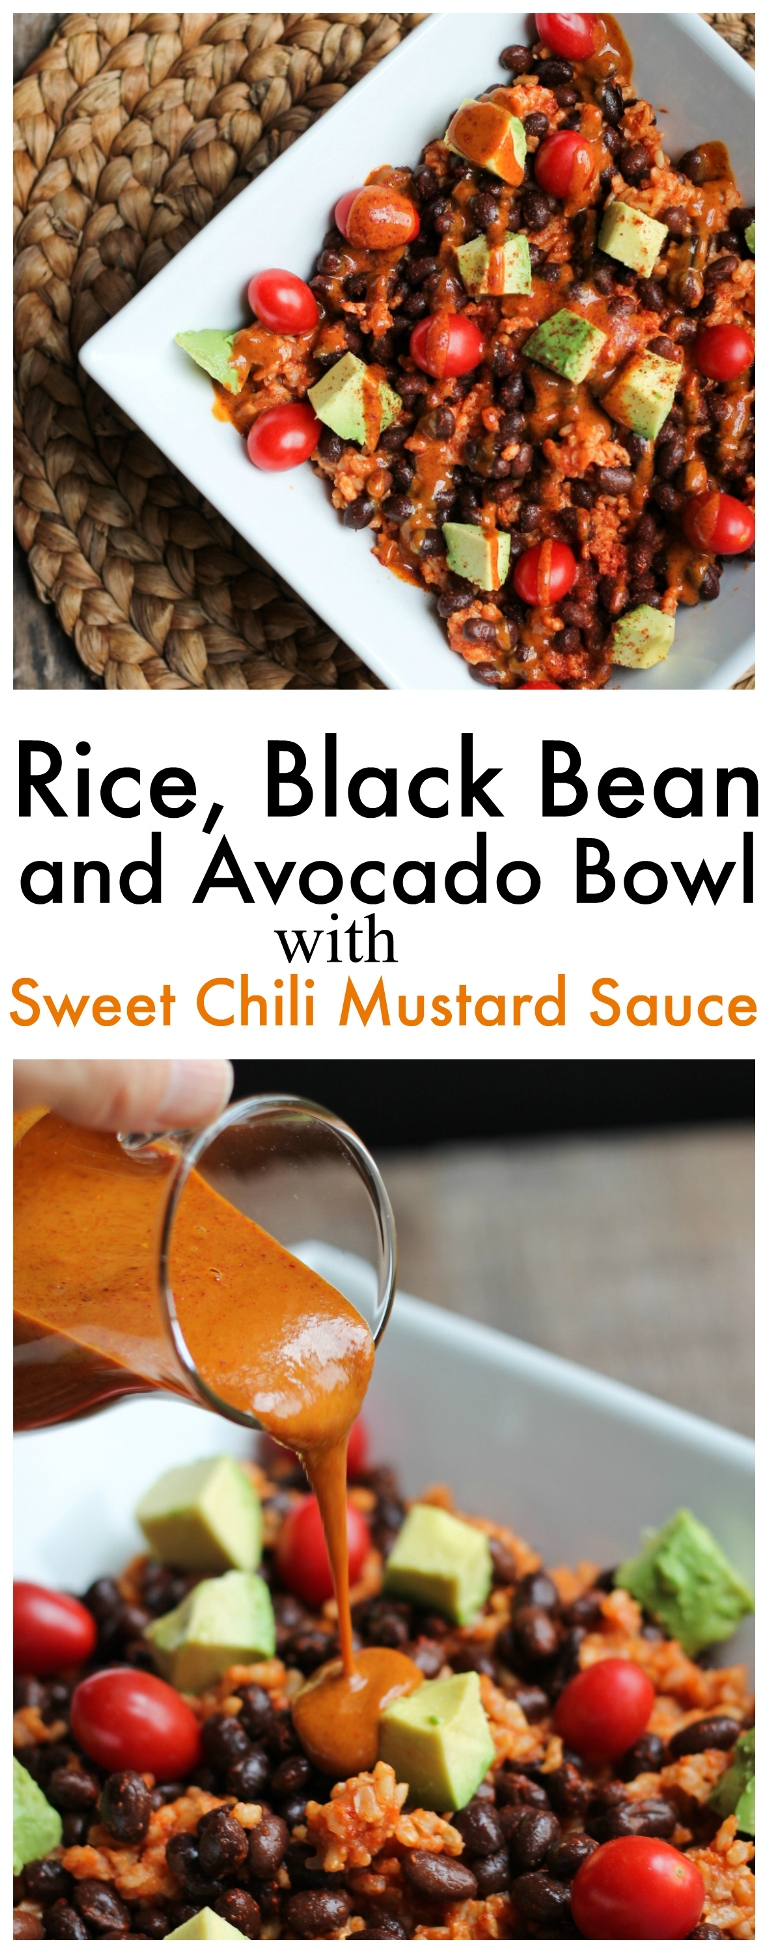 Rice, Black Bean and Avocado Bowl with Fat-Free Sweet Chili Mustard ...